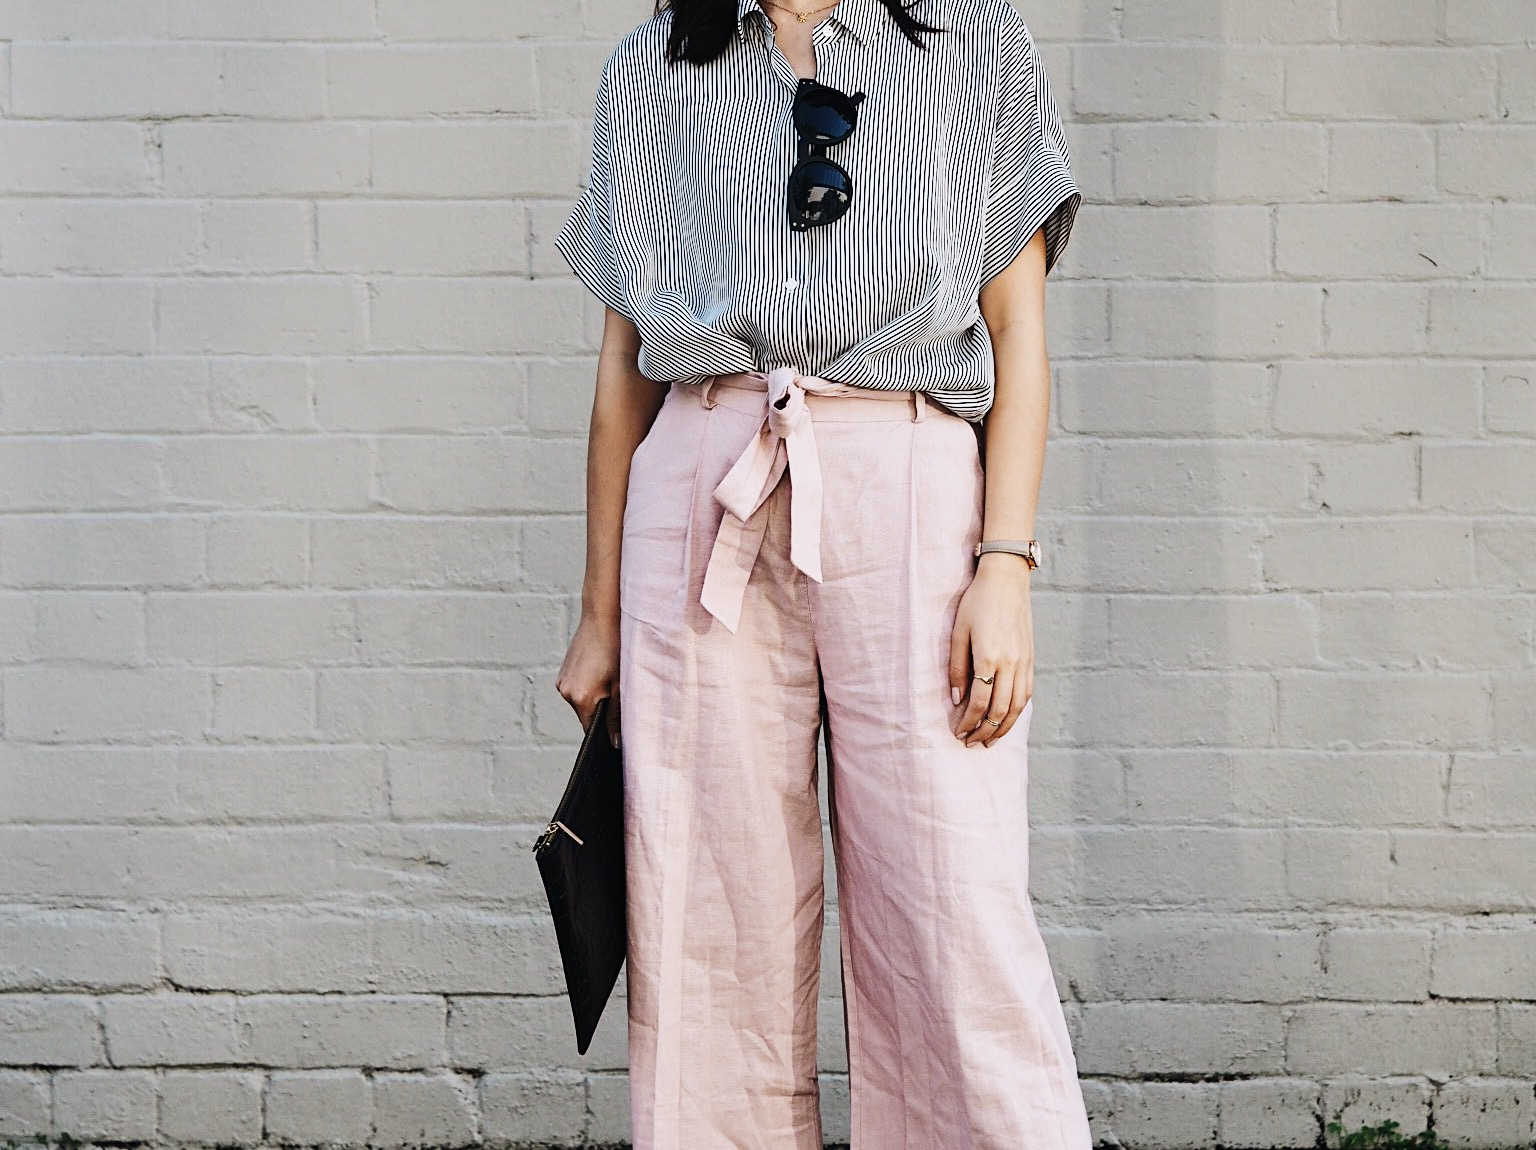 Outfit idea inspiration, ootf, asos, blush pink